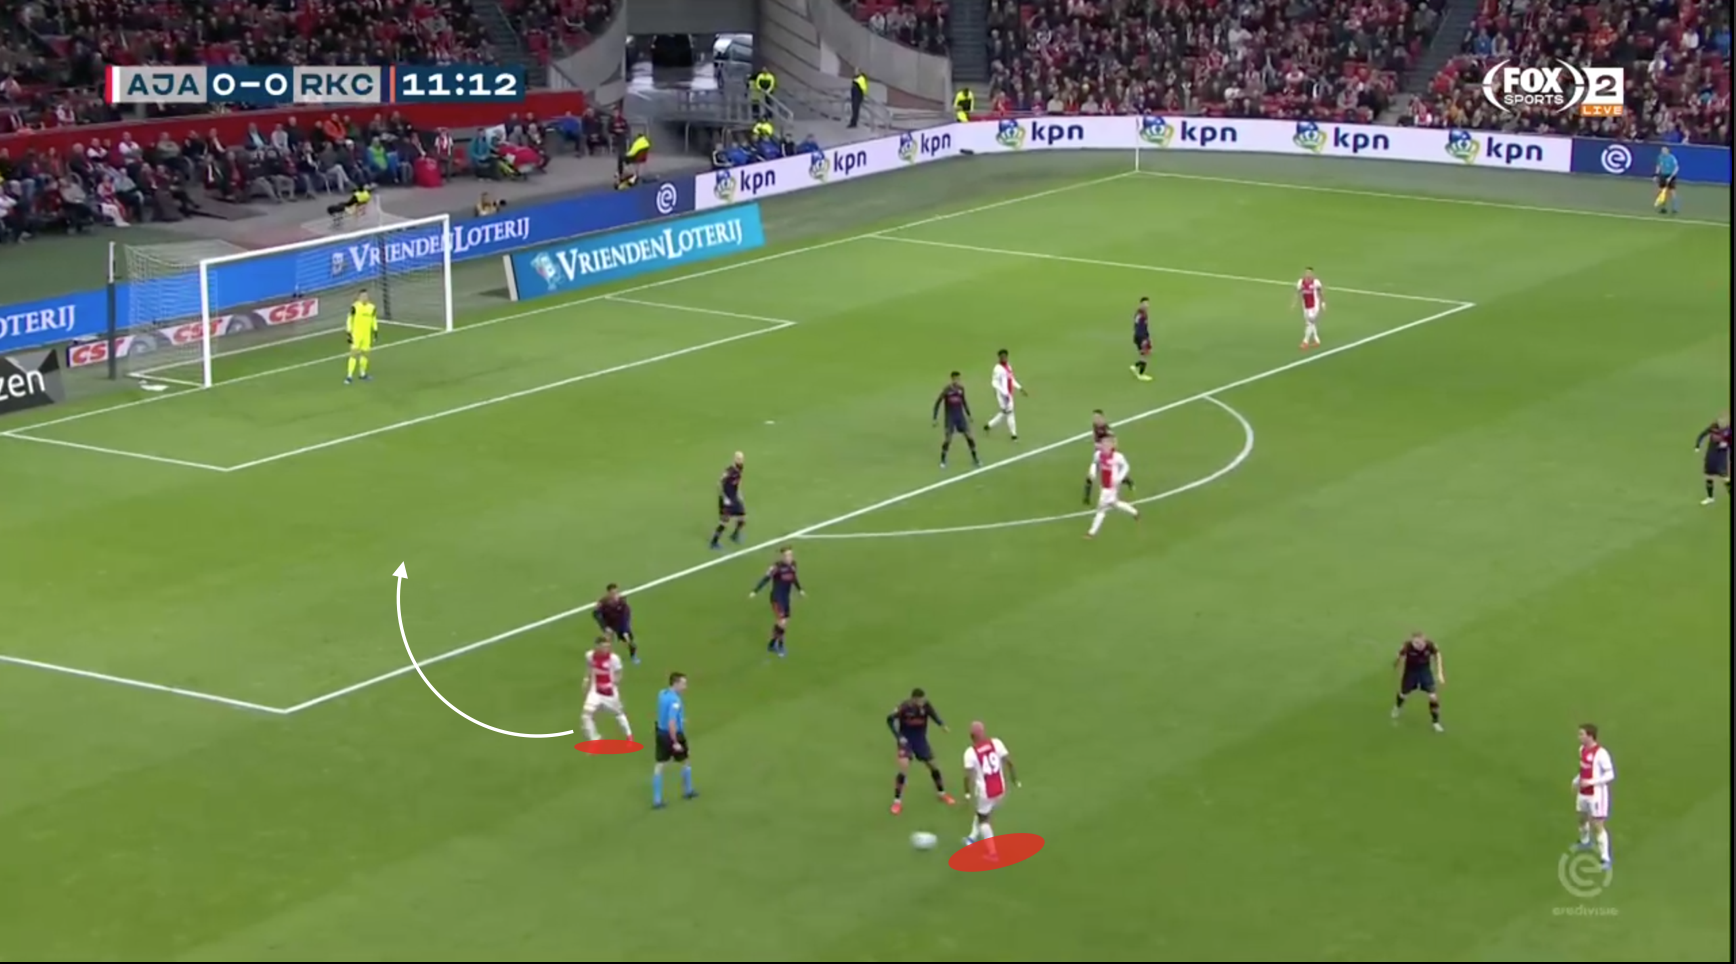 Ziyech's best ability as a playmaker is that he is efficient. This quick thinking is what Chelsea need in the final third. Both Hudson-Odoi and Mount, who as mentioned above are Chelsea's most creative players this season, struggle in decision-making aspects, which is understandable since both are quite young. However, this lack of quick thinking can hurt Chelsea, and having Ziyech pulling the strings will allow for quicker interplay from Chelsea in the final third.